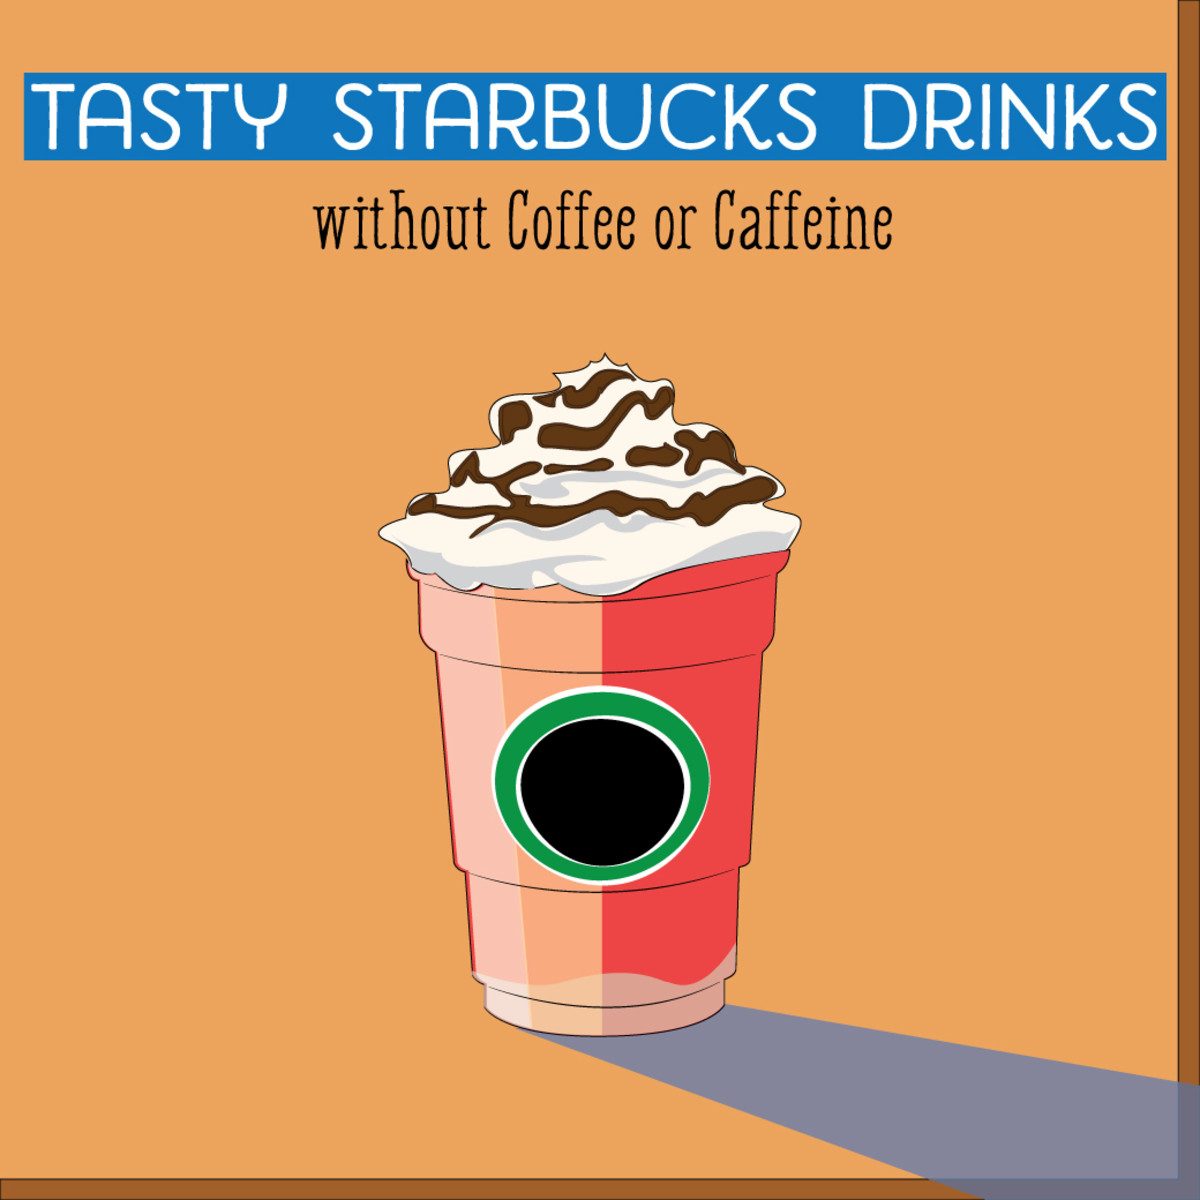 Tasty Starbucks Drinks Without Coffee or Caffeine